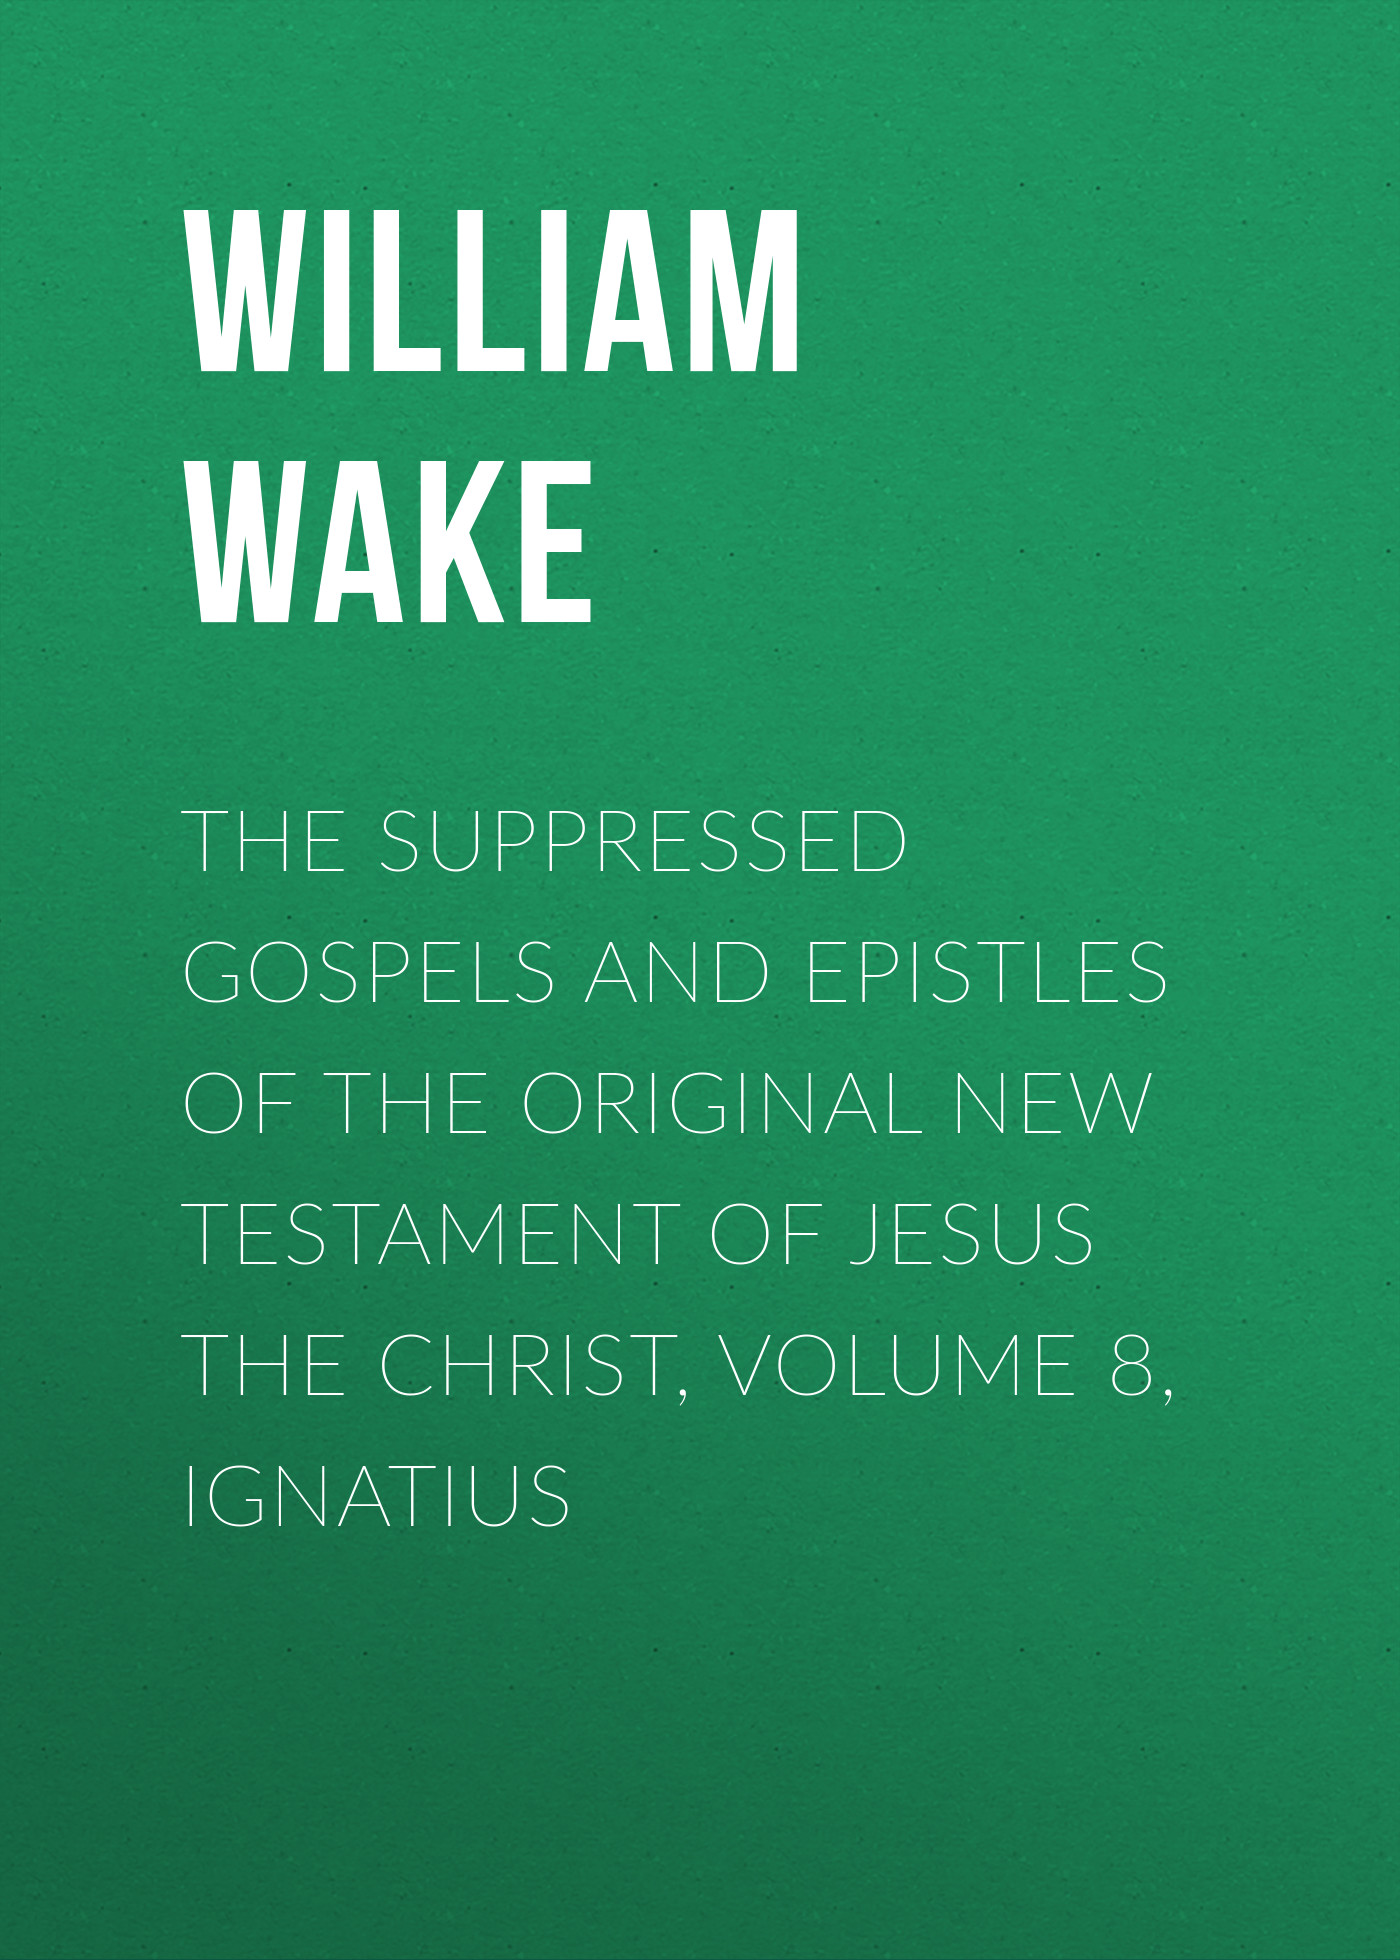 William Wake The suppressed Gospels and Epistles of the original New Testament of Jesus the Christ, Volume 8, Ignatius william wake the suppressed gospels and epistles of the original new testament of jesus the christ volume 3 infancy of jesus christ page 8 page 6